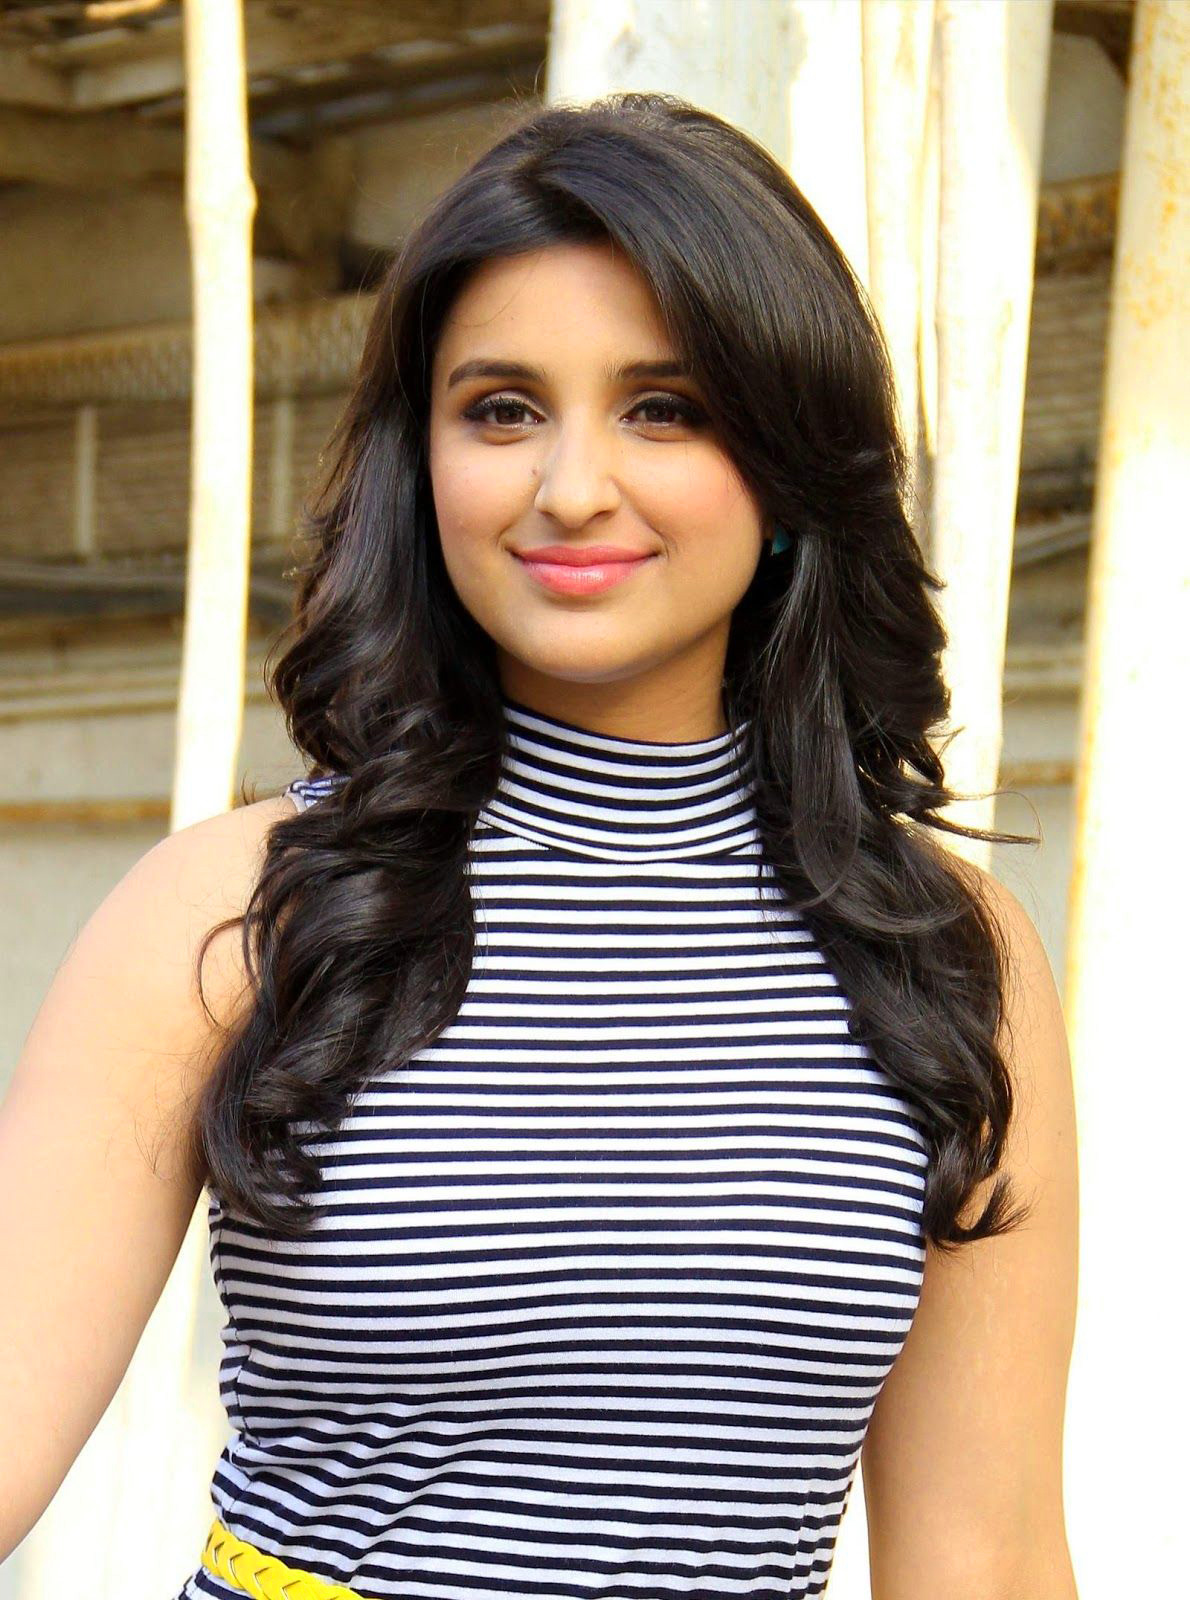 PARINEETI CHOPRA IMAGES PICTURES PICS FREE HD DOWNLOAD